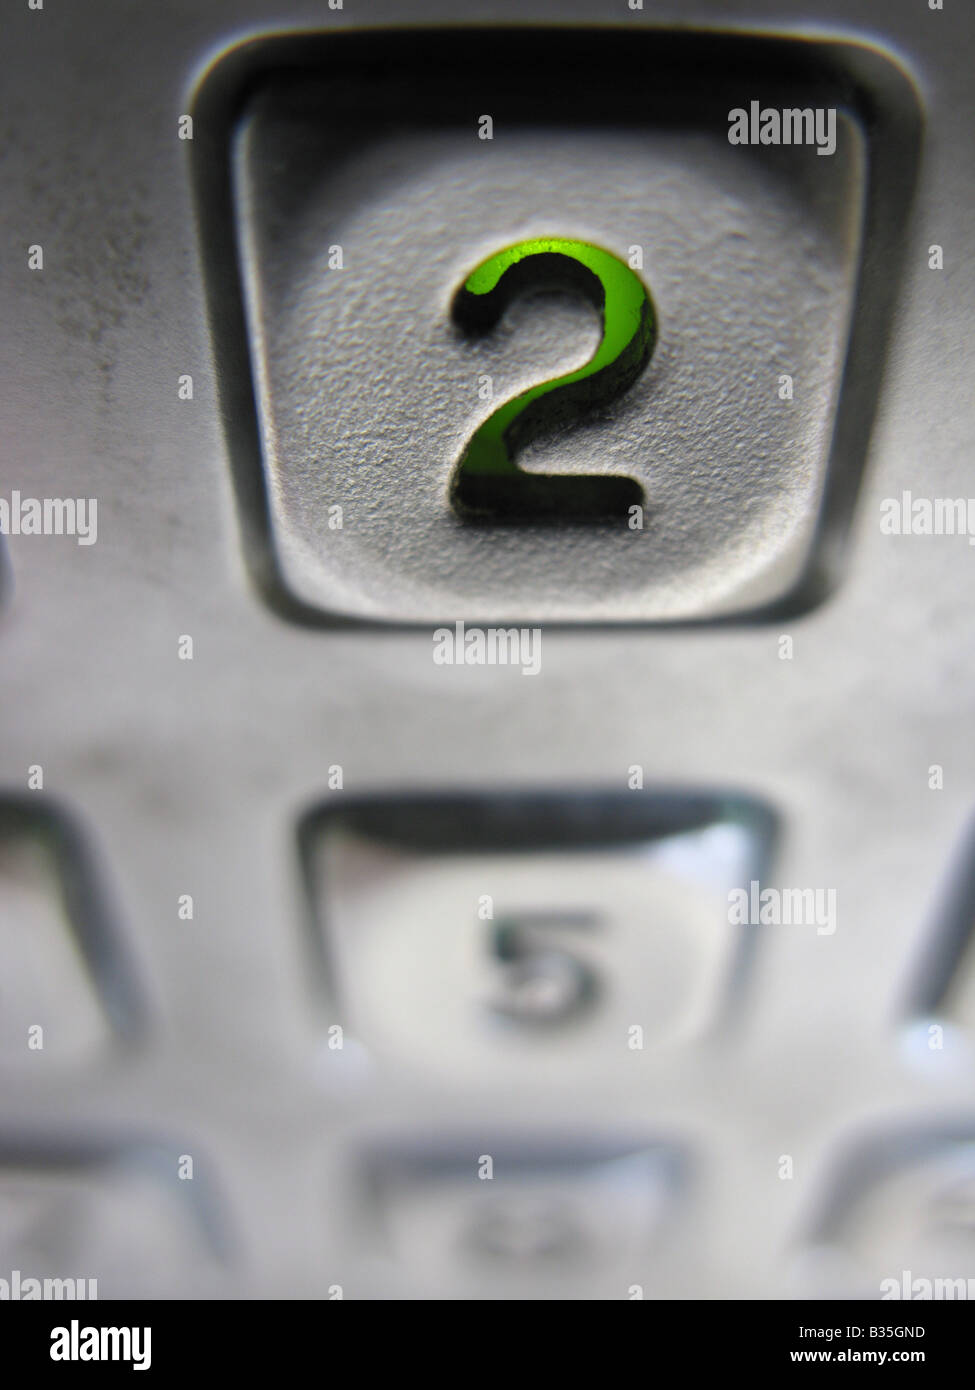 Number 2 two on a security system Stock Photo